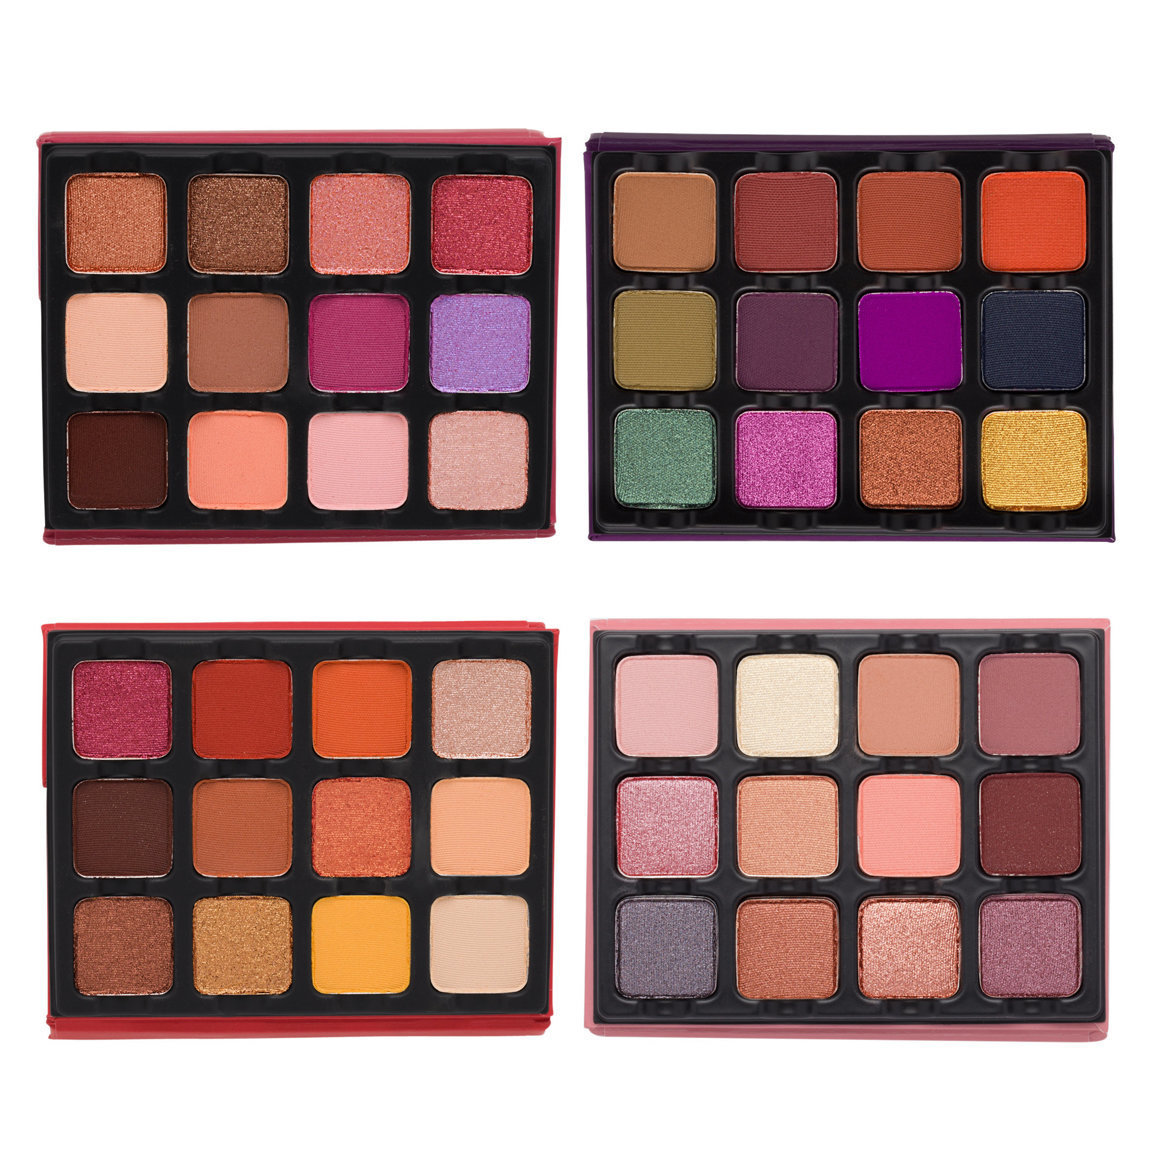 Viseart The EDIT Eyeshadow Palette Collection alternative view 1 - product swatch.